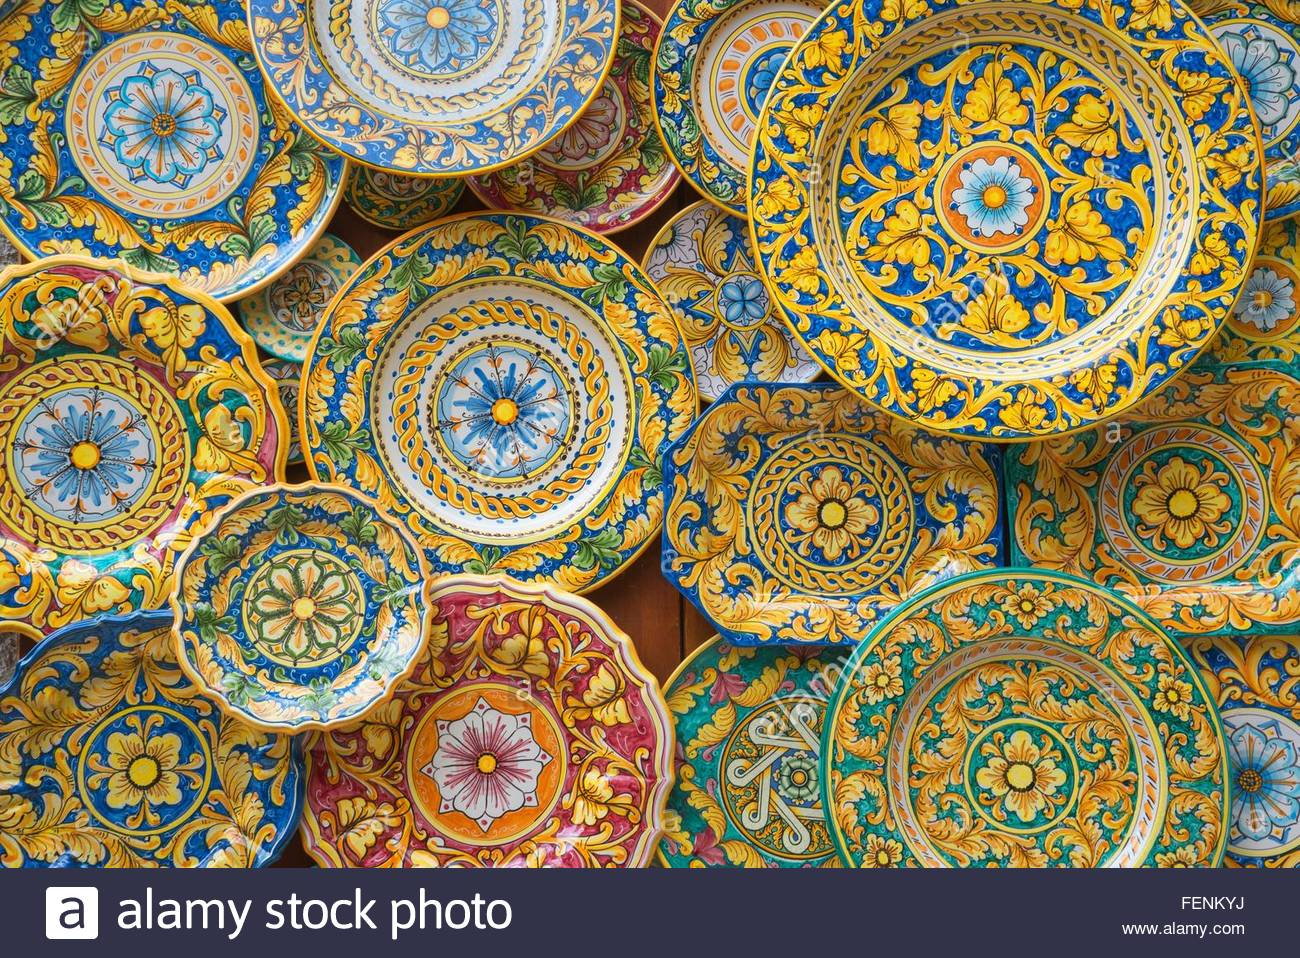 Traditional hand painted ornate plates, Sicily, Italy - Stock Image